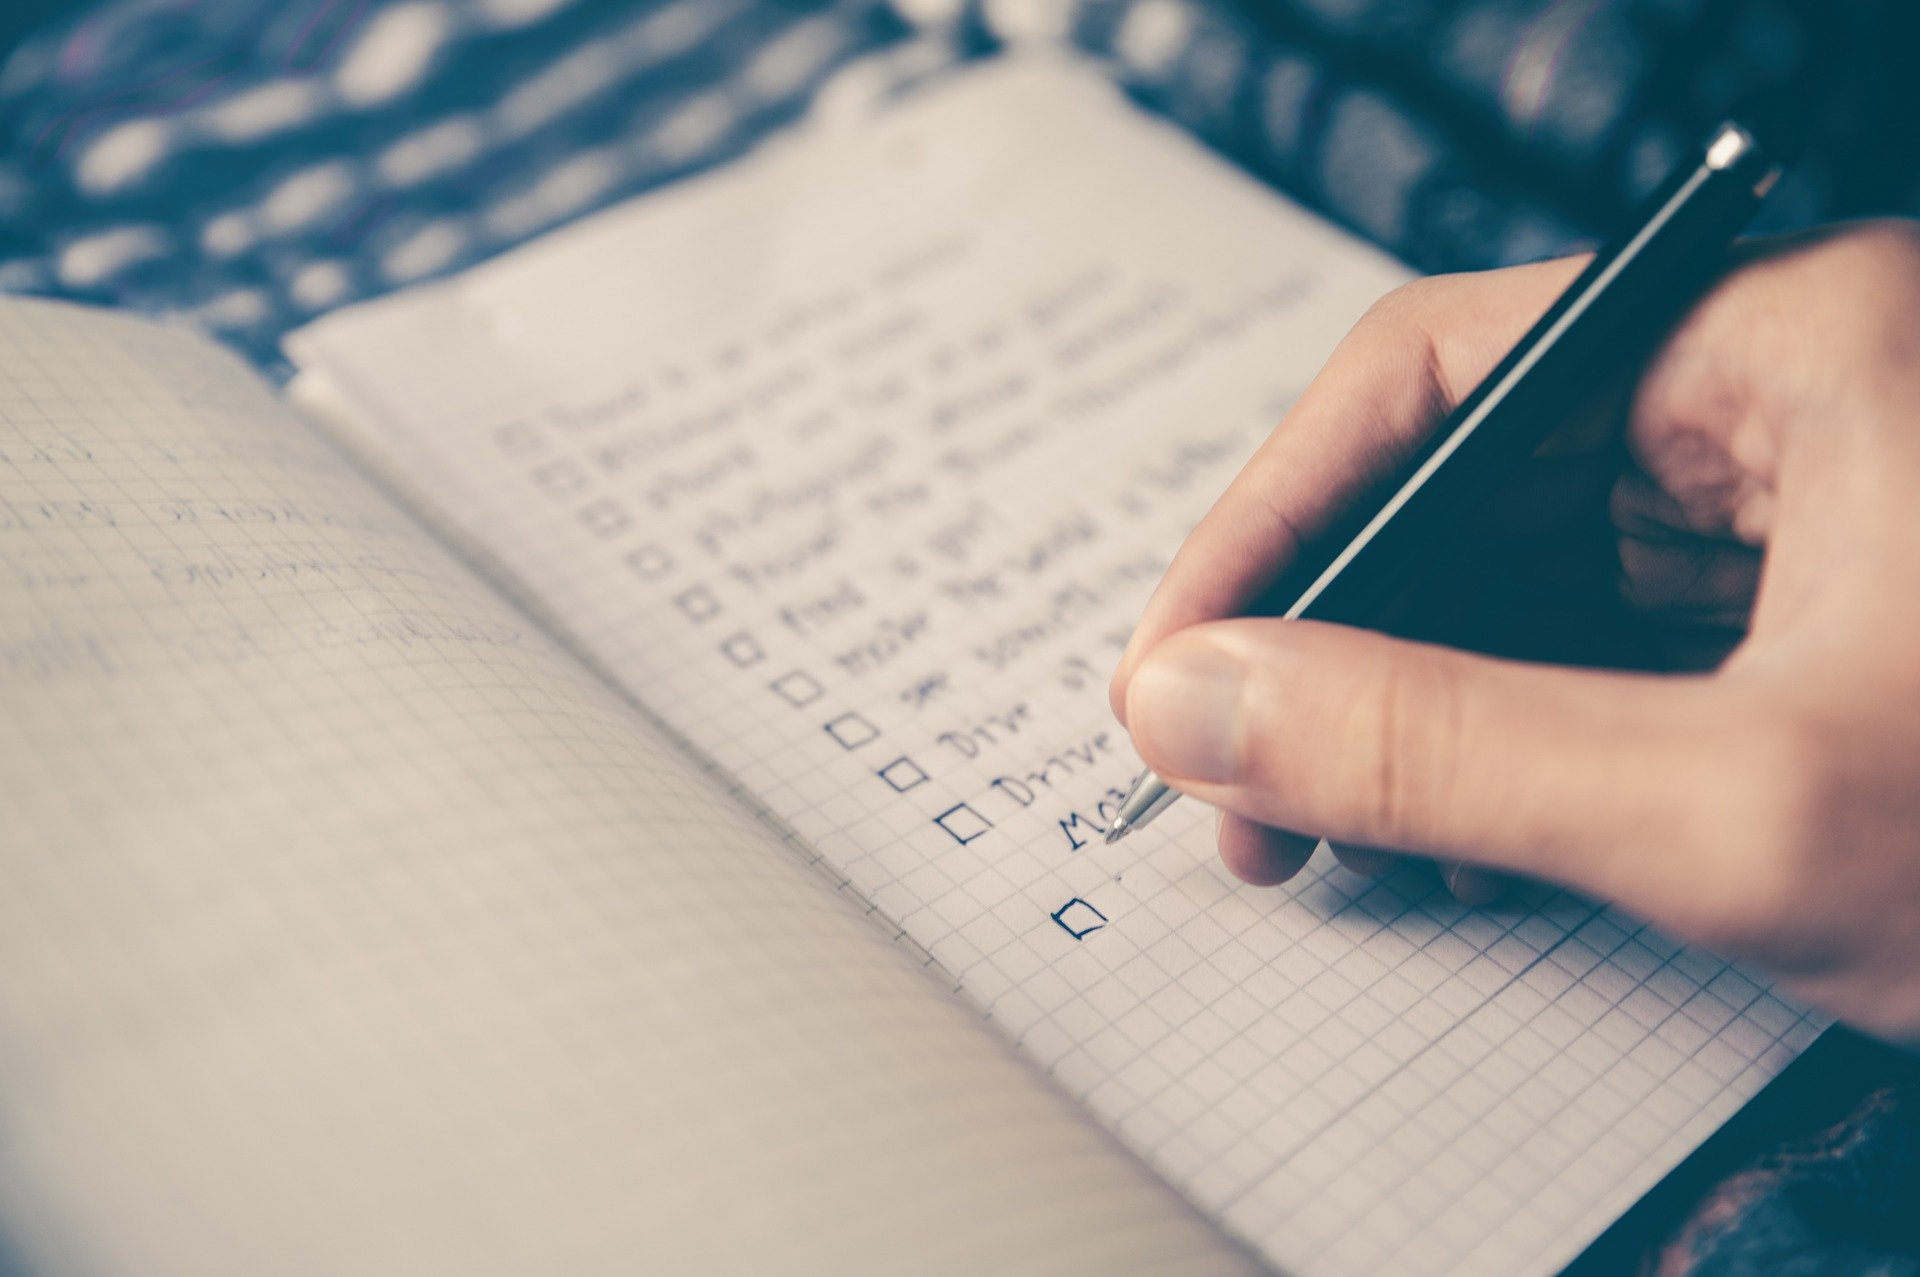 Content Marketing for Small Businesses: Top 15 ideas to try in 2021